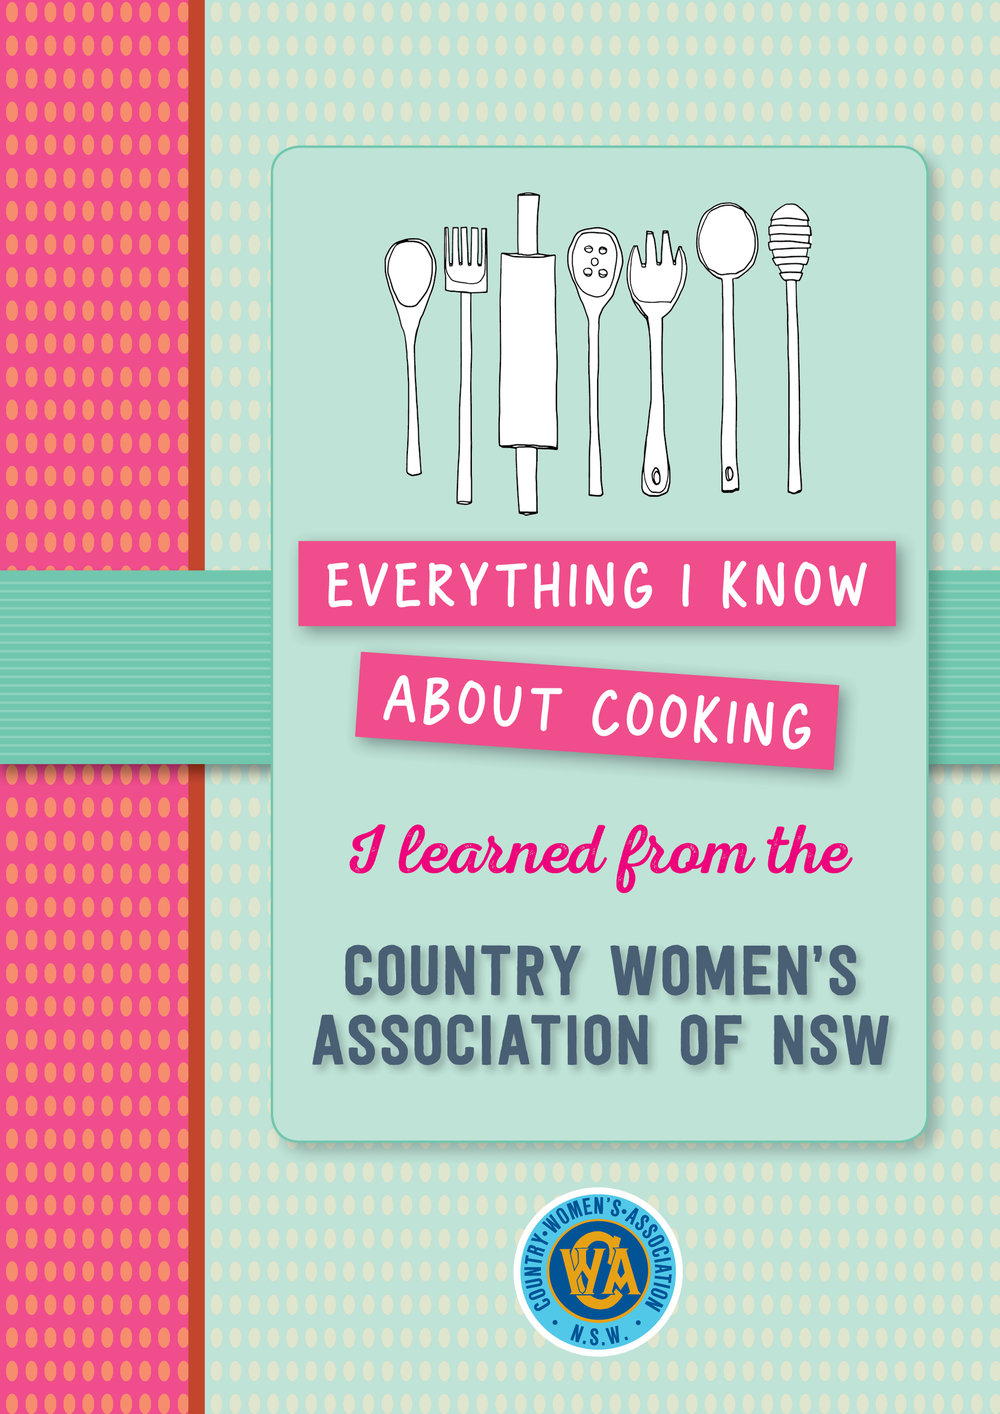 - The latest cookbook from the Country Women's Association of NSW (CWA) has just been released. With tried and true recipes for a perfect sausage roll snack, a succulent Greek-style roast chicken for dinner or honeycomb cheesecake slice for dessert, Everything I know about cooking I learned from the CWA is the perfect kitchen companion, in a deceptively small format.